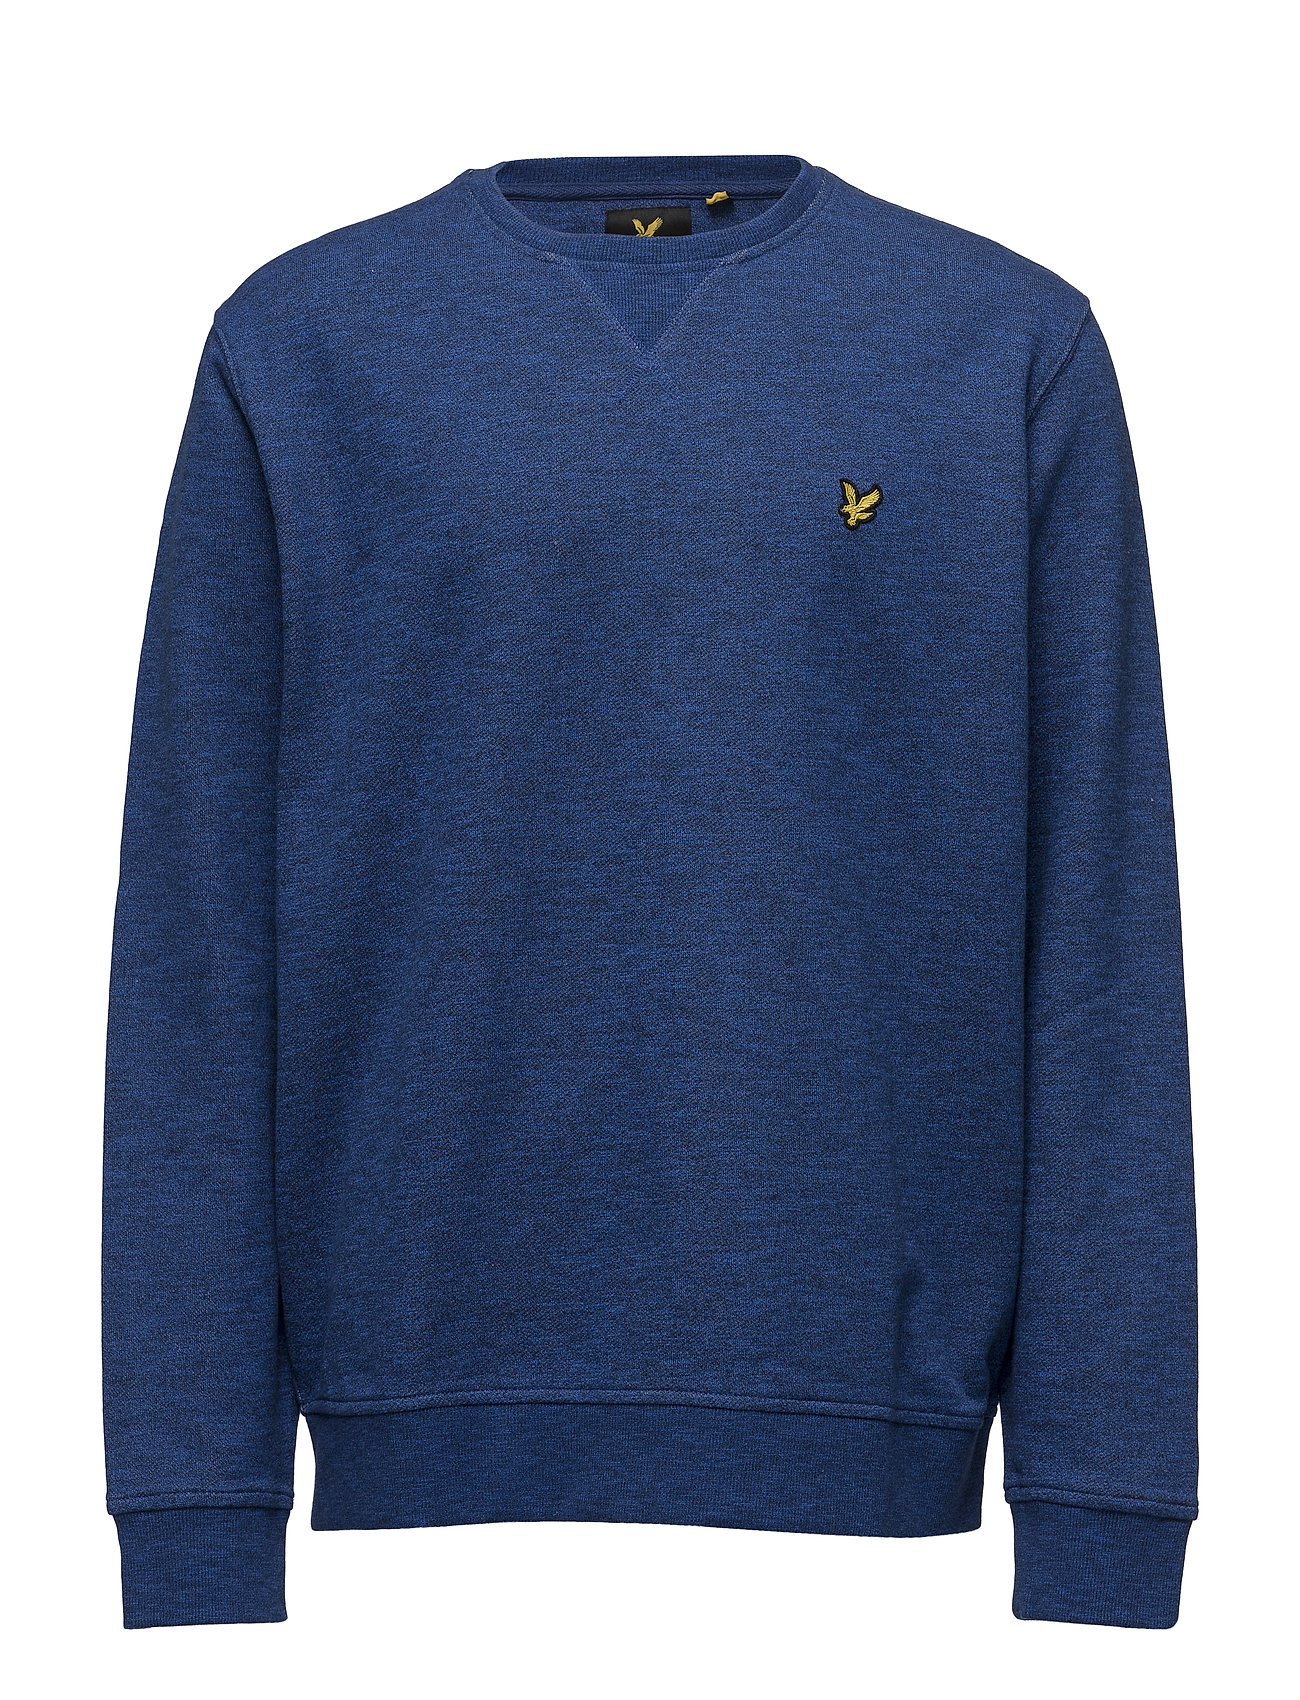 Crew Neck Mouline Sweat Shirt Lyle & Scott Striktrøjer til Mænd i Navy blå